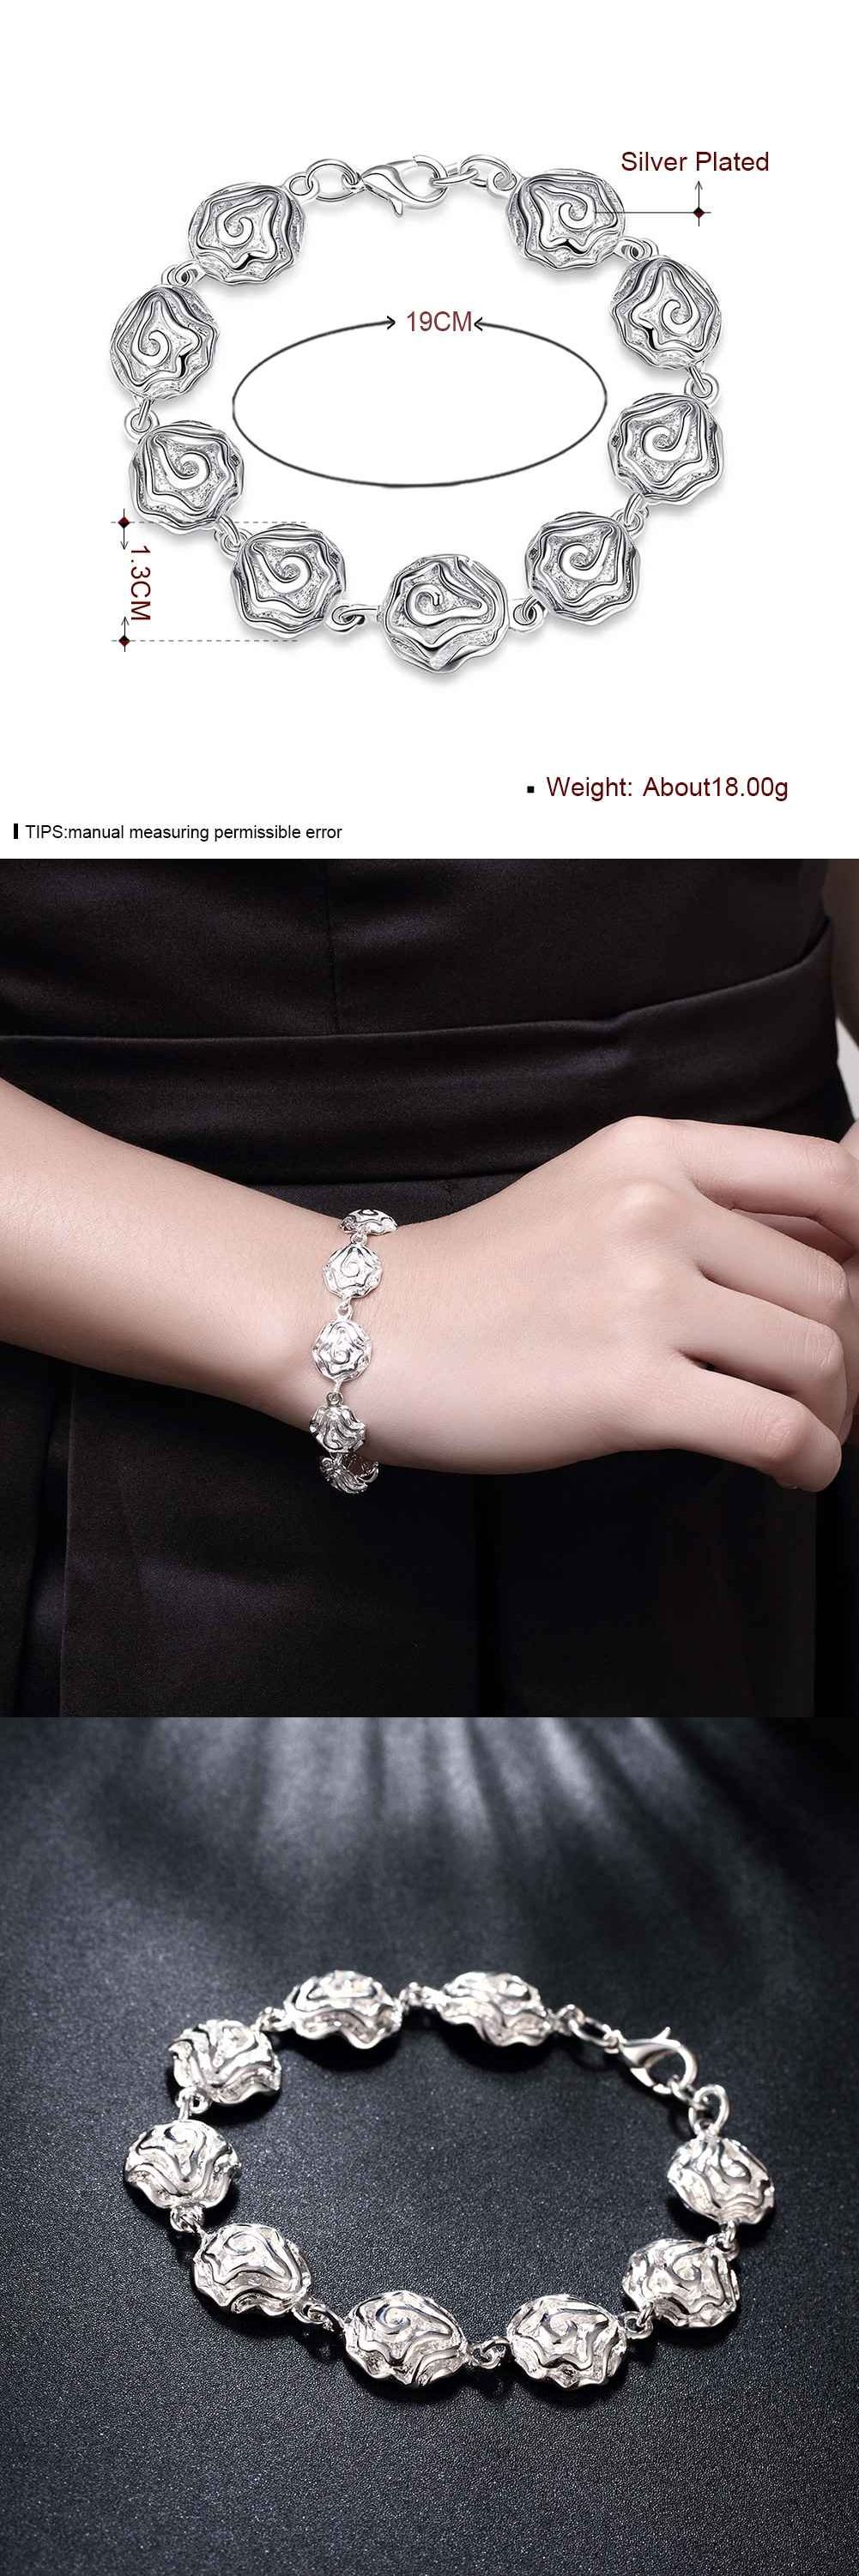 Floating charms silver bracelets for women pulseras pcs rose